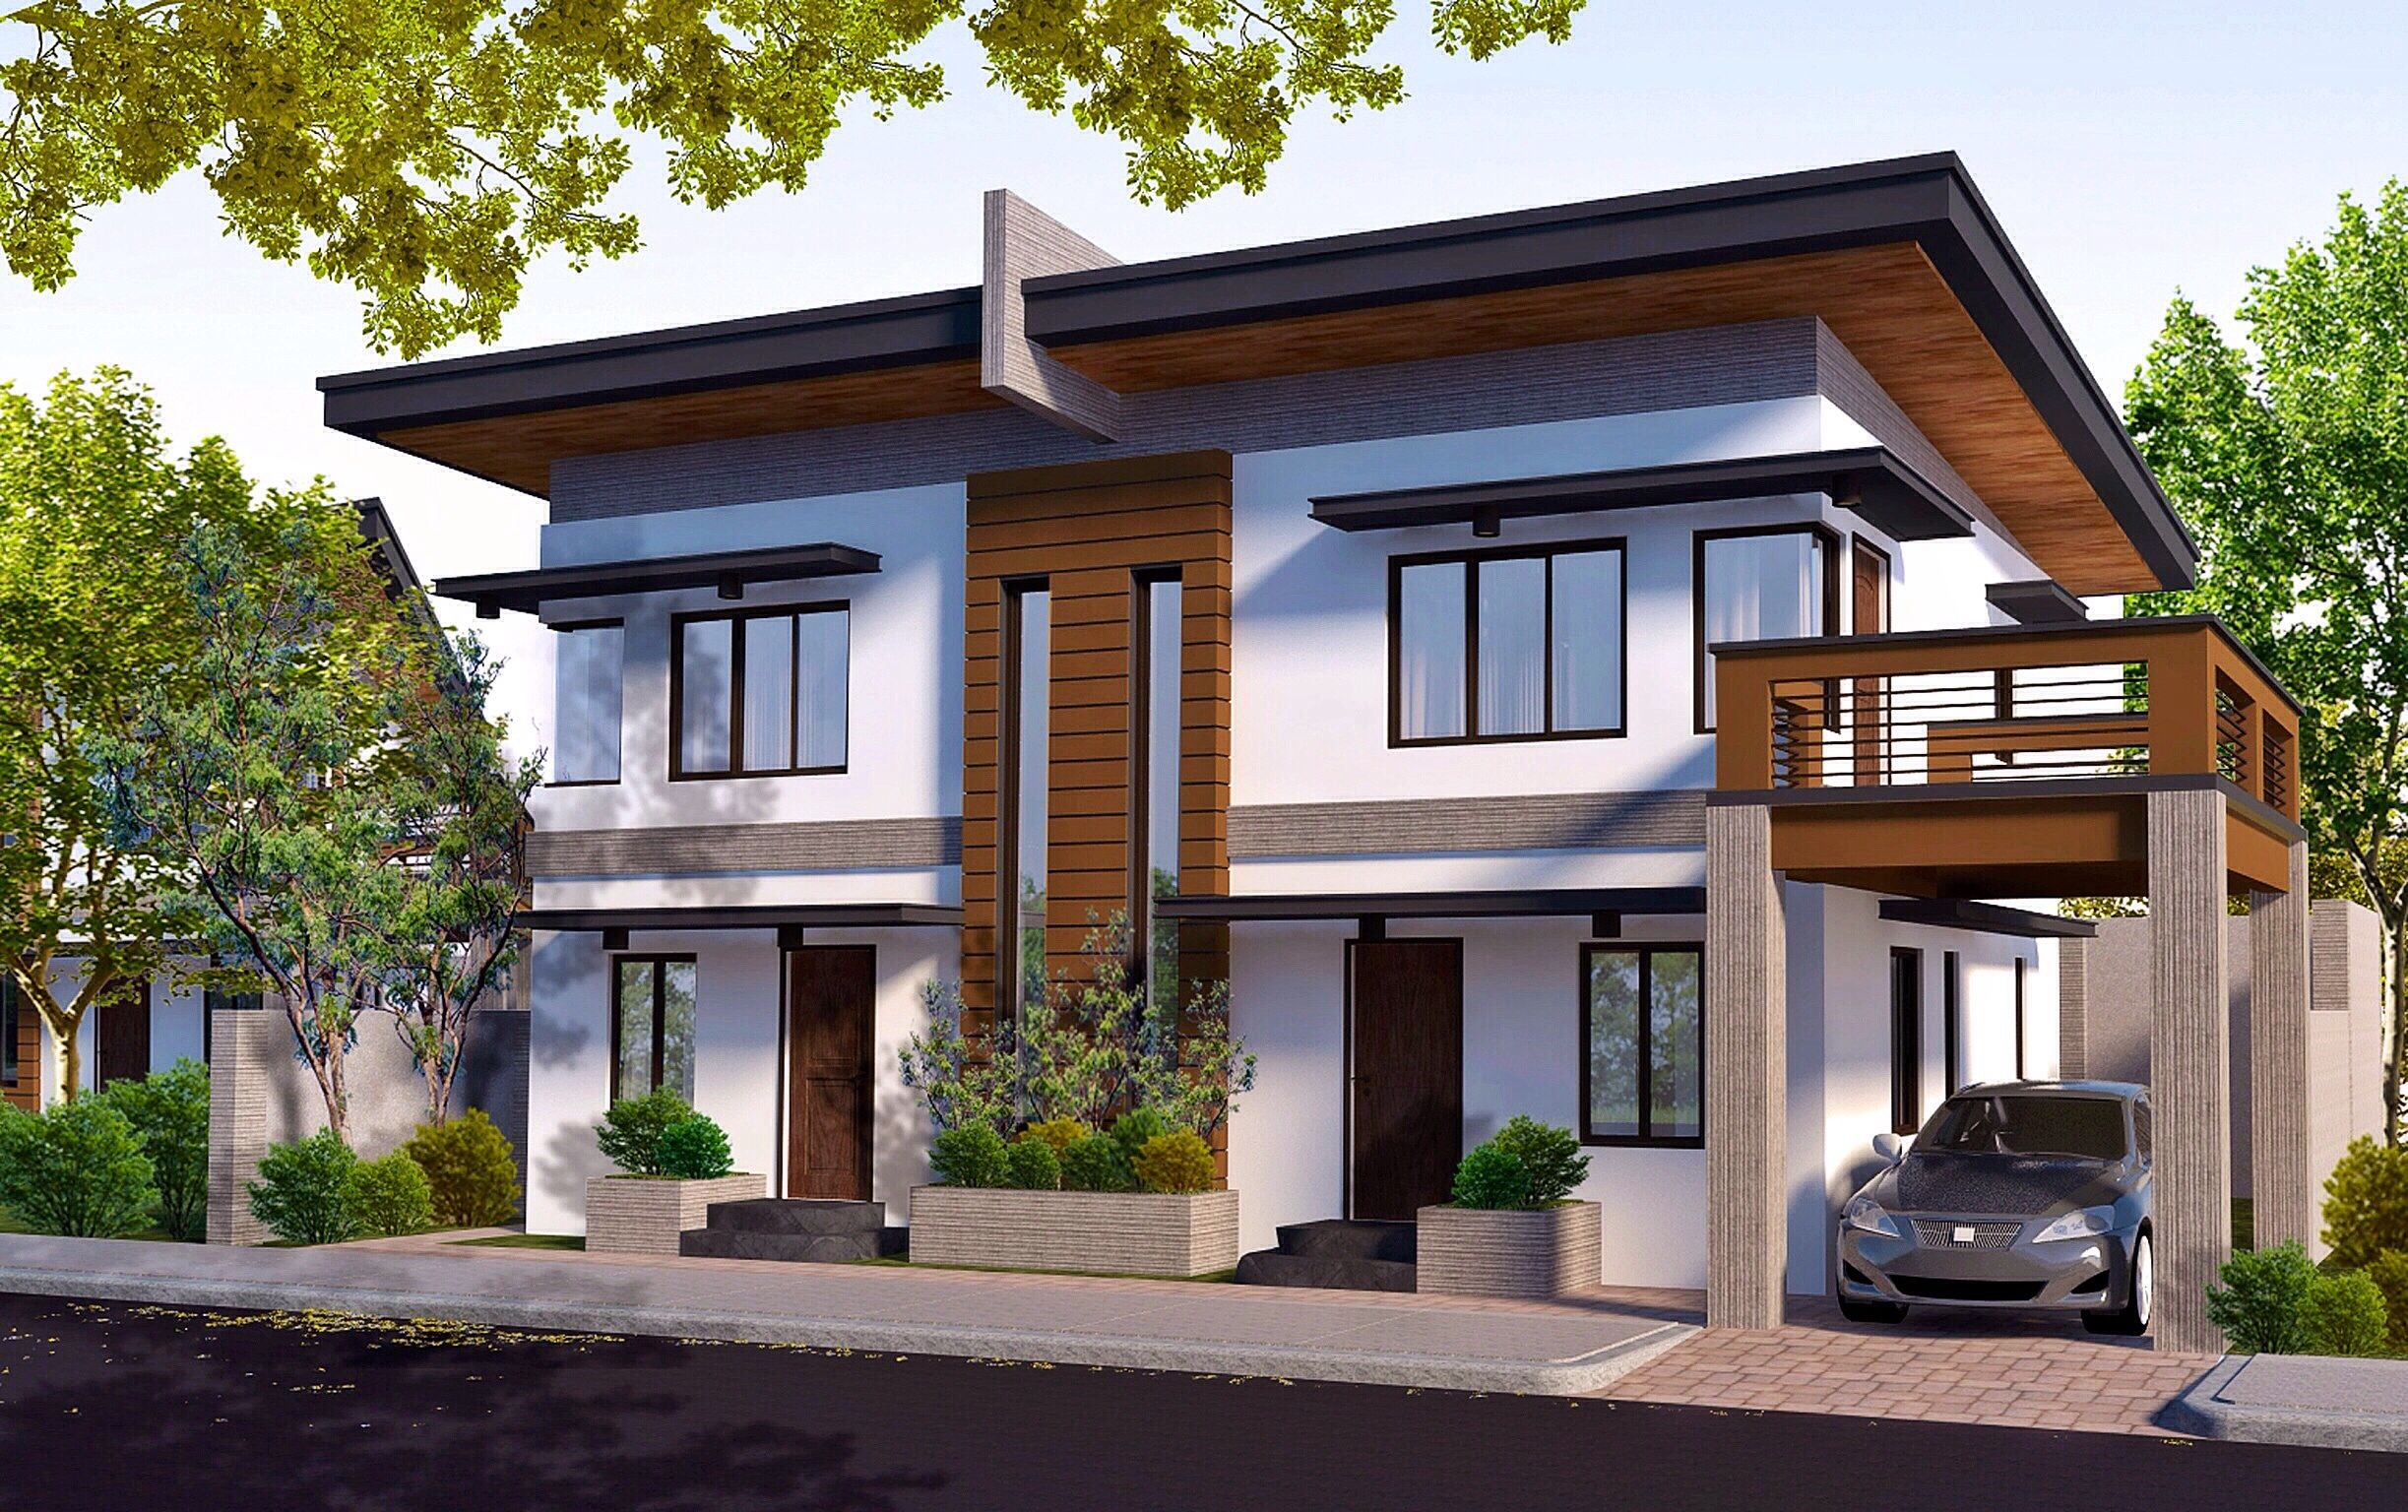 duplex housing rendered in vray for google sketchup